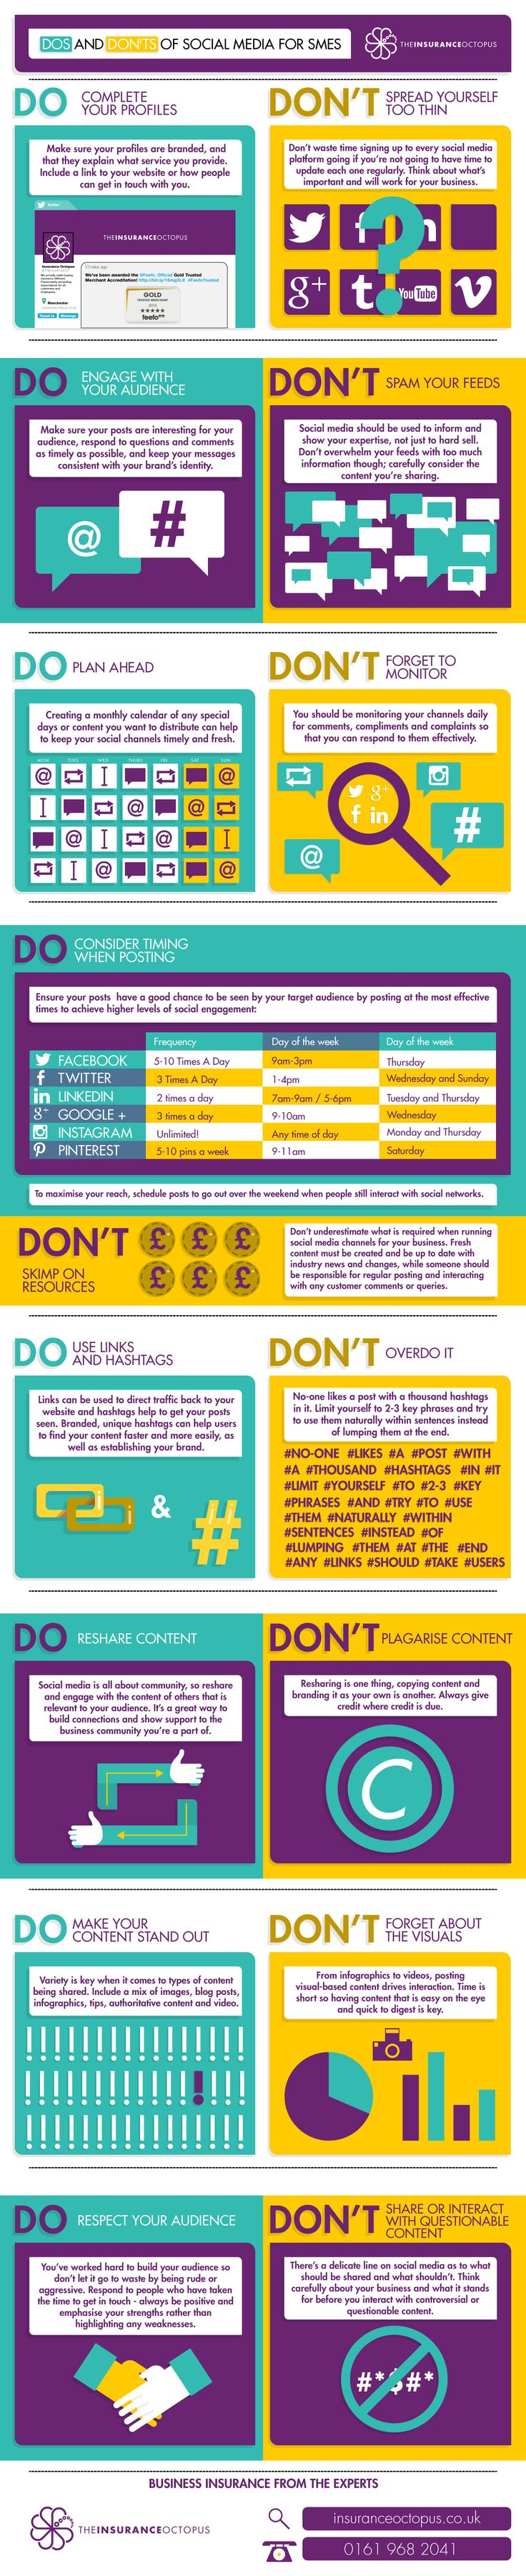 The Dos and Don'ts of Social Media for SMEs. Fabulous dos and don'ts of social media in a handy infographic.  #Infographic #Smallbusiness #NonProfits